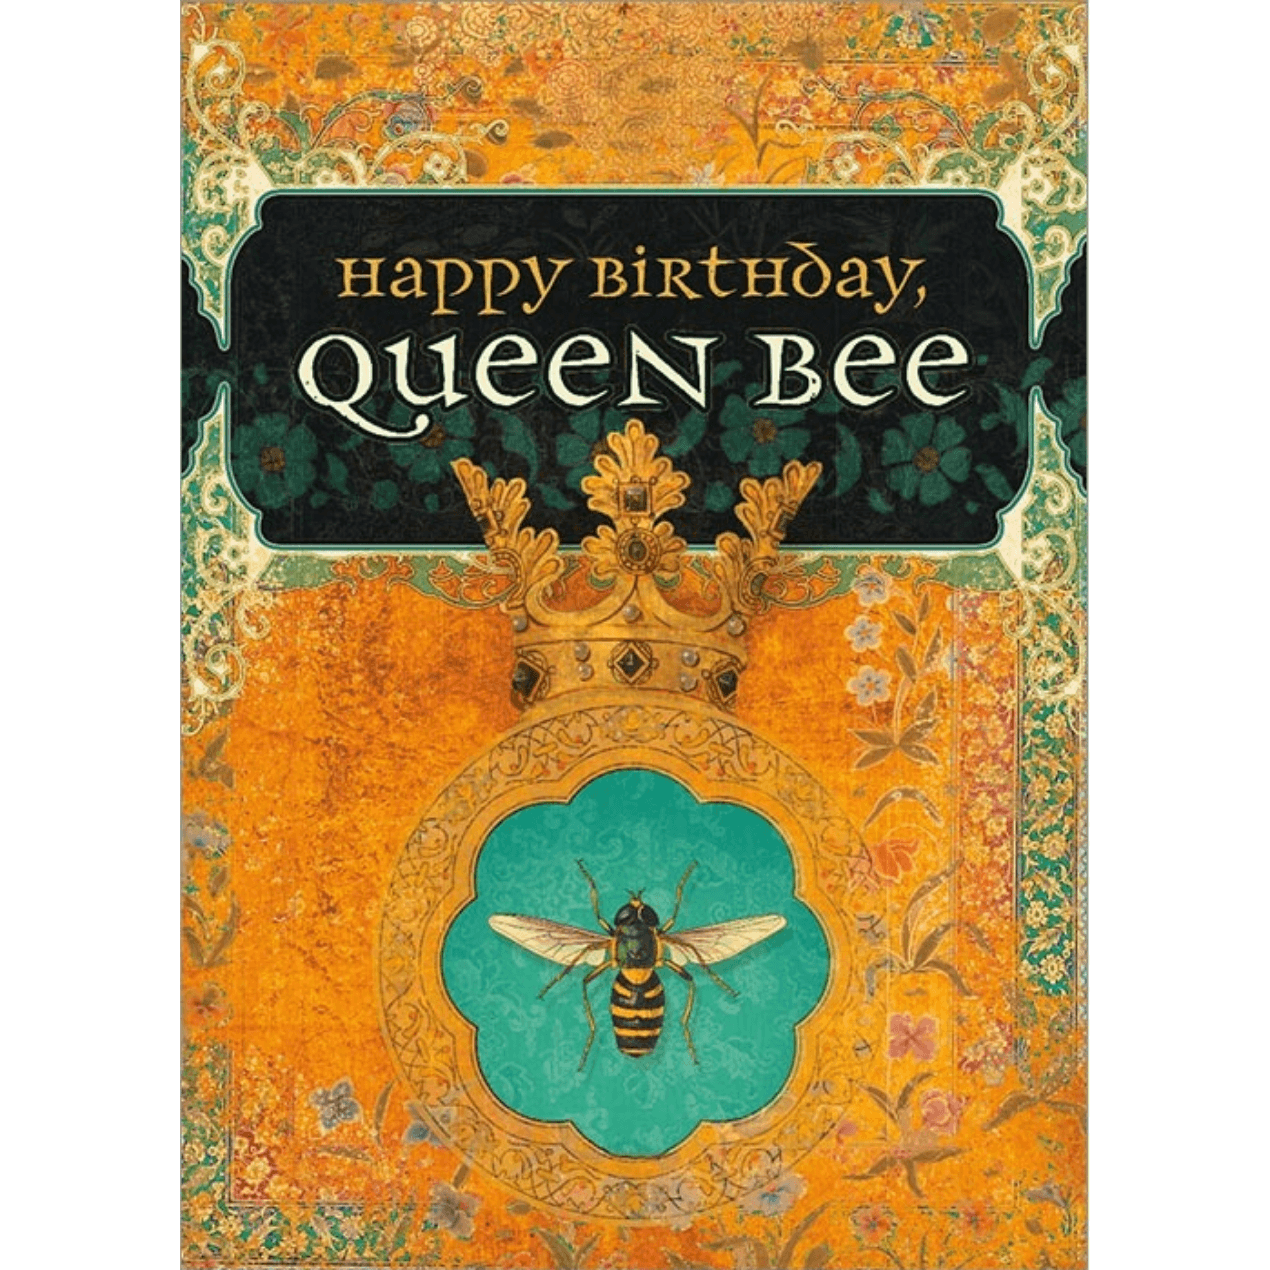 'Queen Bee' Greeting Card with Gorgeous Bee Illustration - Lady of the Lake